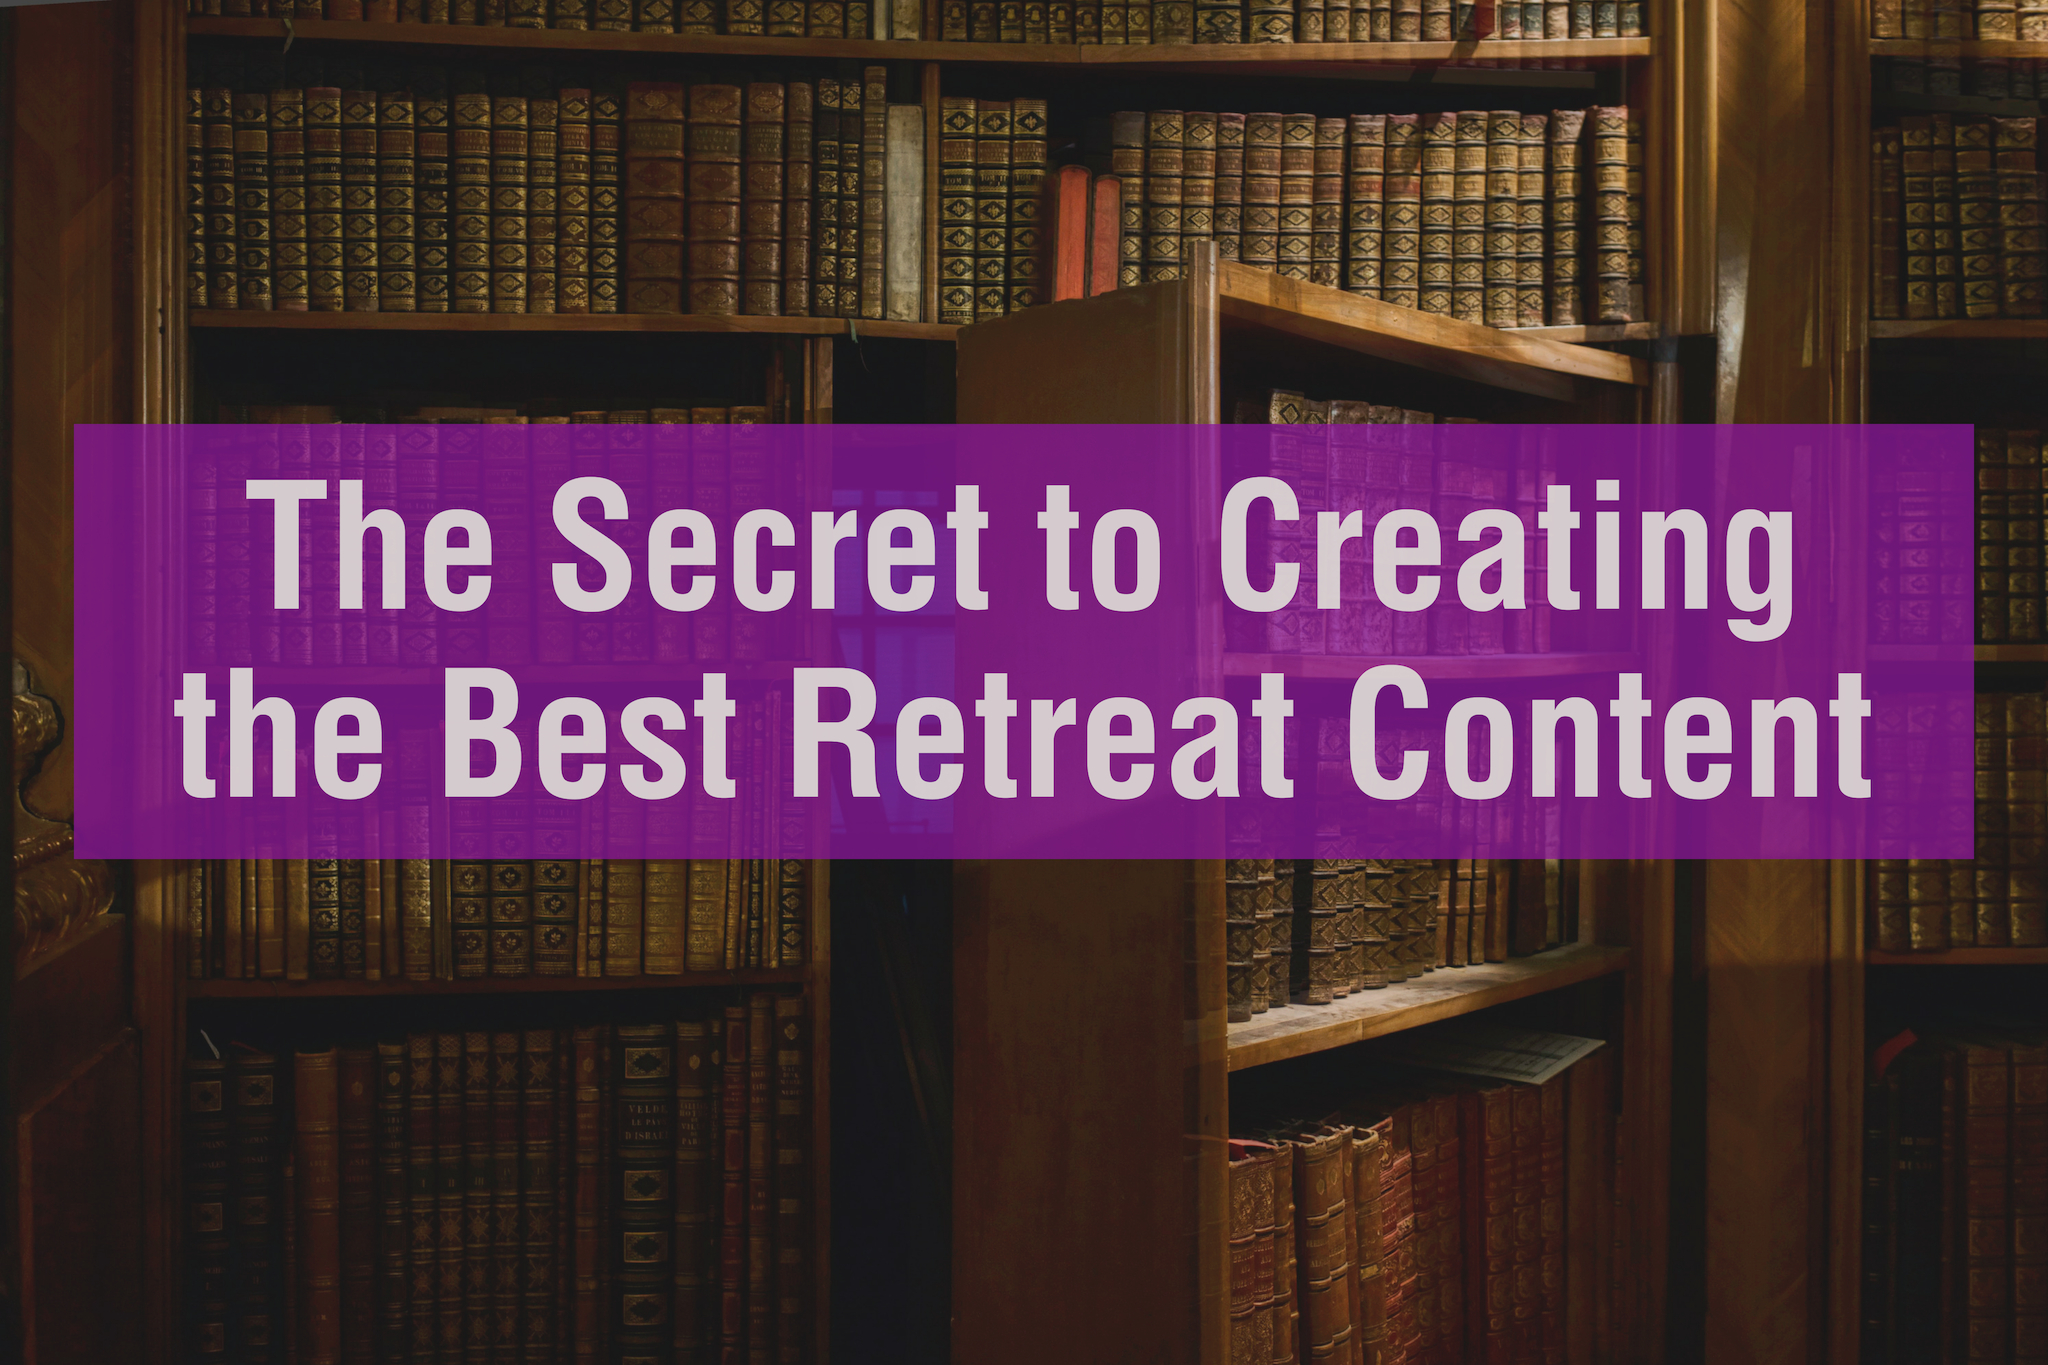 The Secret to Creating the Best Retreat Content